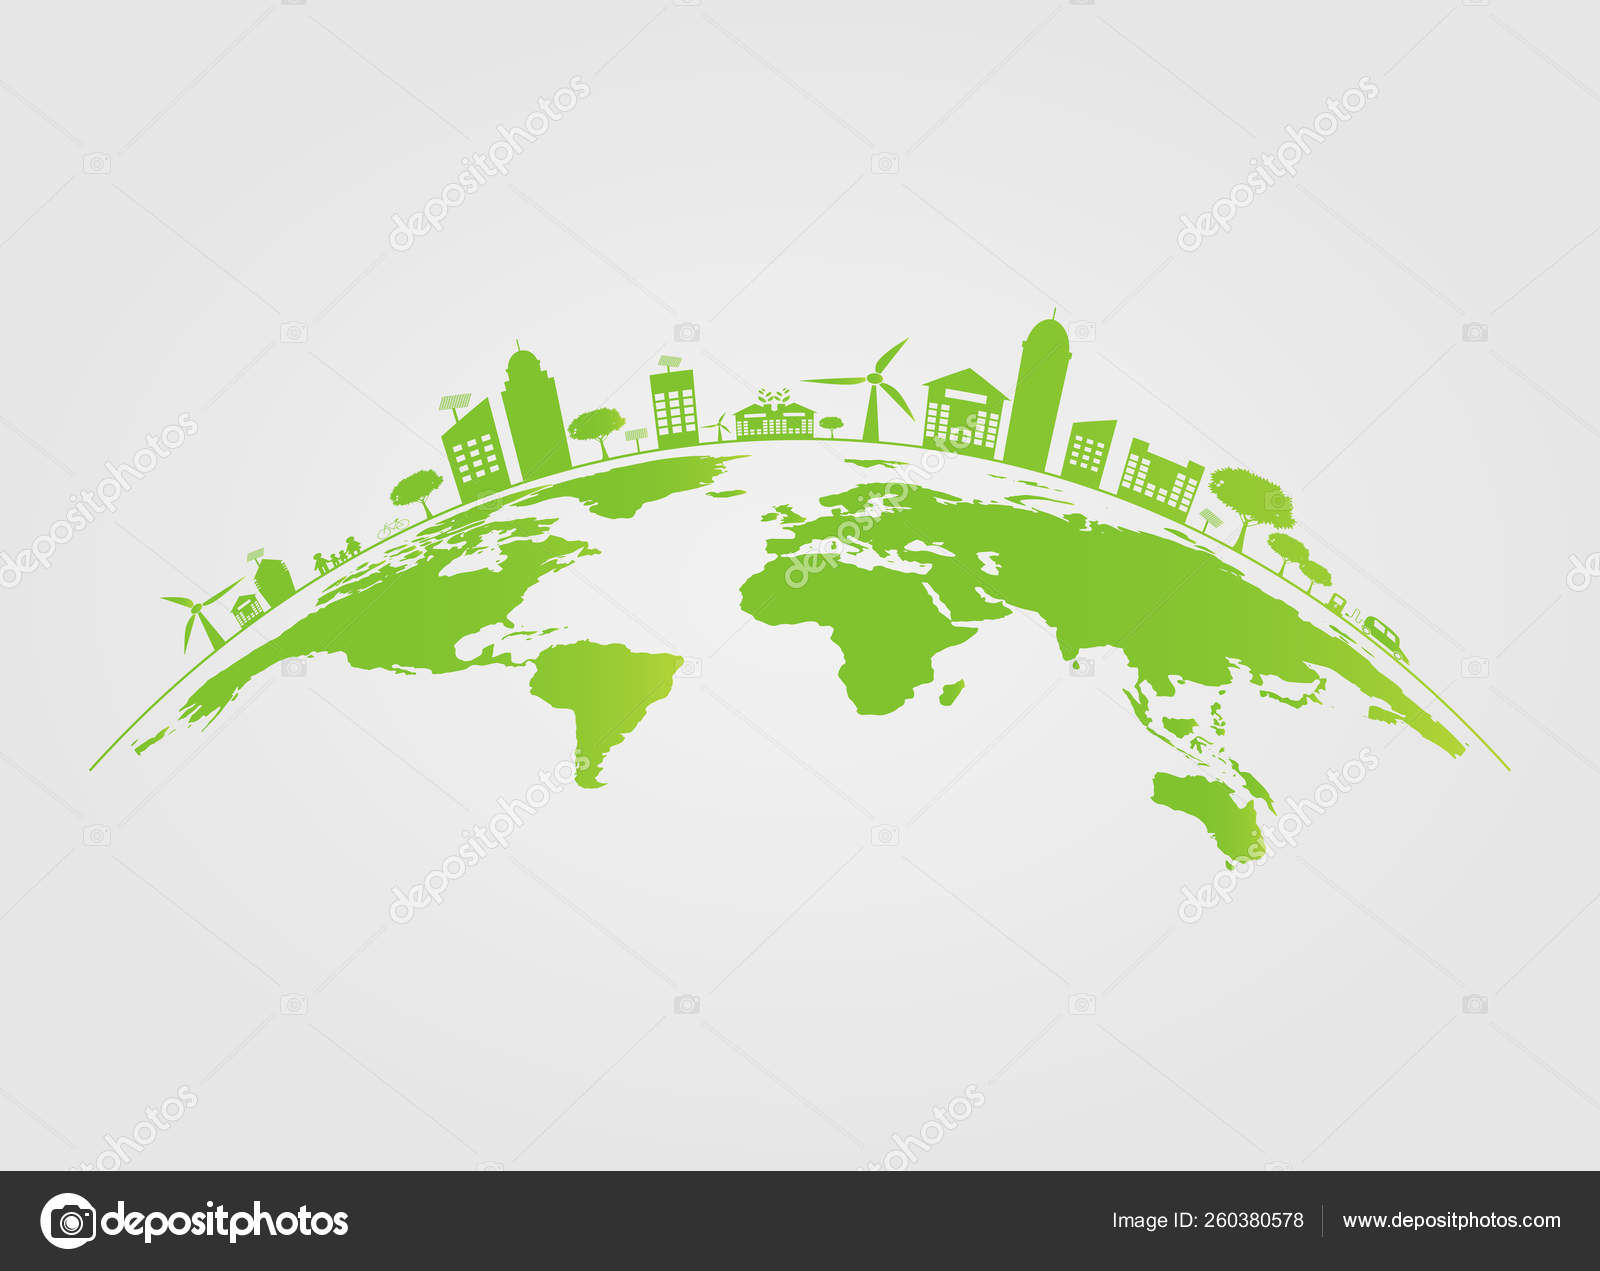 Ecology Green Cities Help The World With Eco Friendly Concept